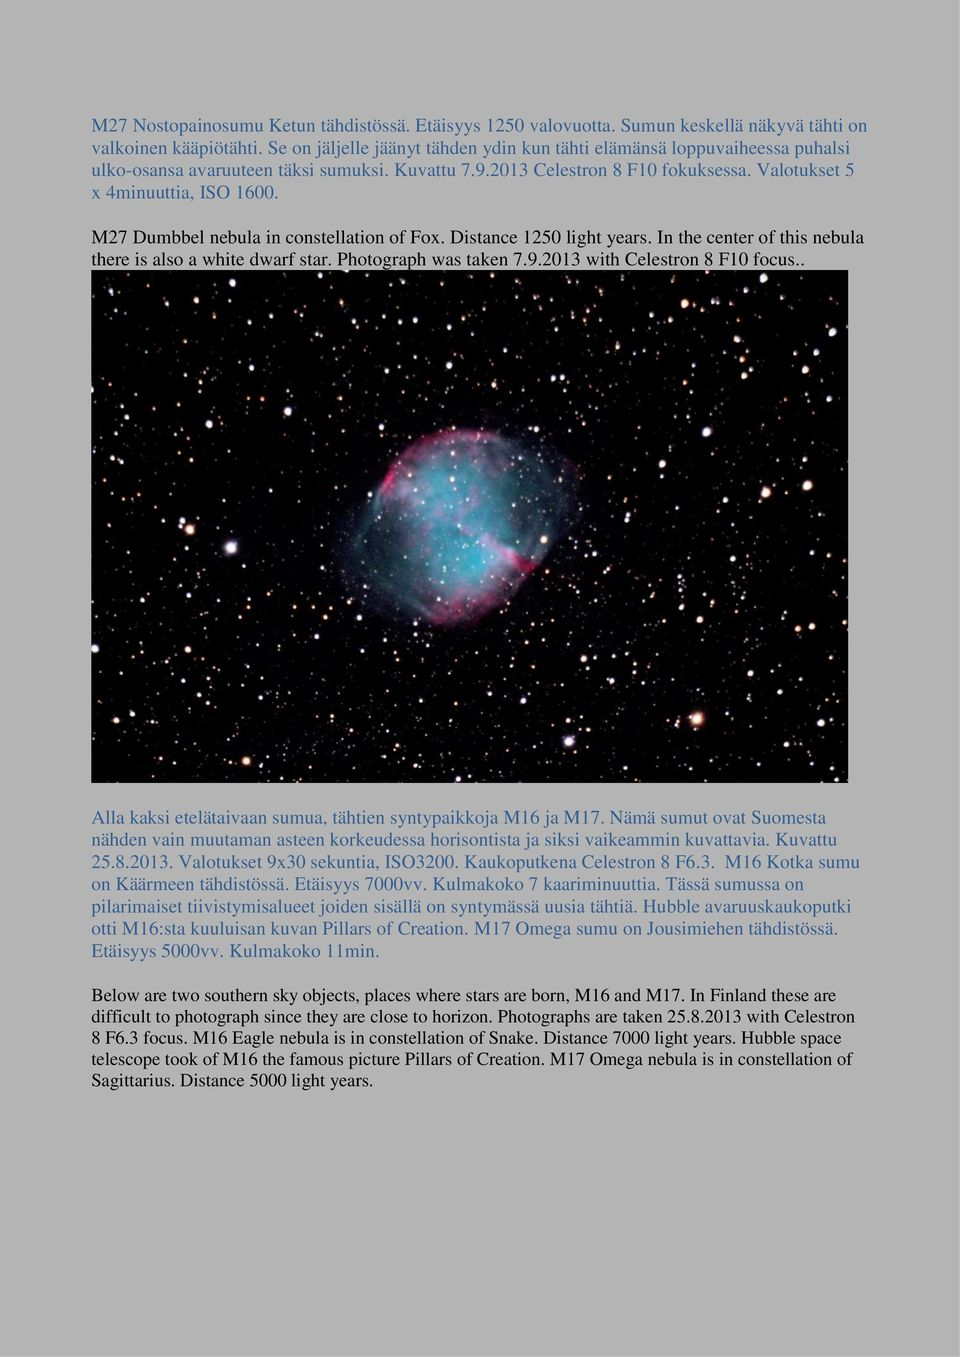 M27 Dumbbel nebula in constellation of Fox. Distance 1250 light years. In the center of this nebula there is also a white dwarf star. Photograph was taken 7.9.2013 with Celestron 8 F10 focus.